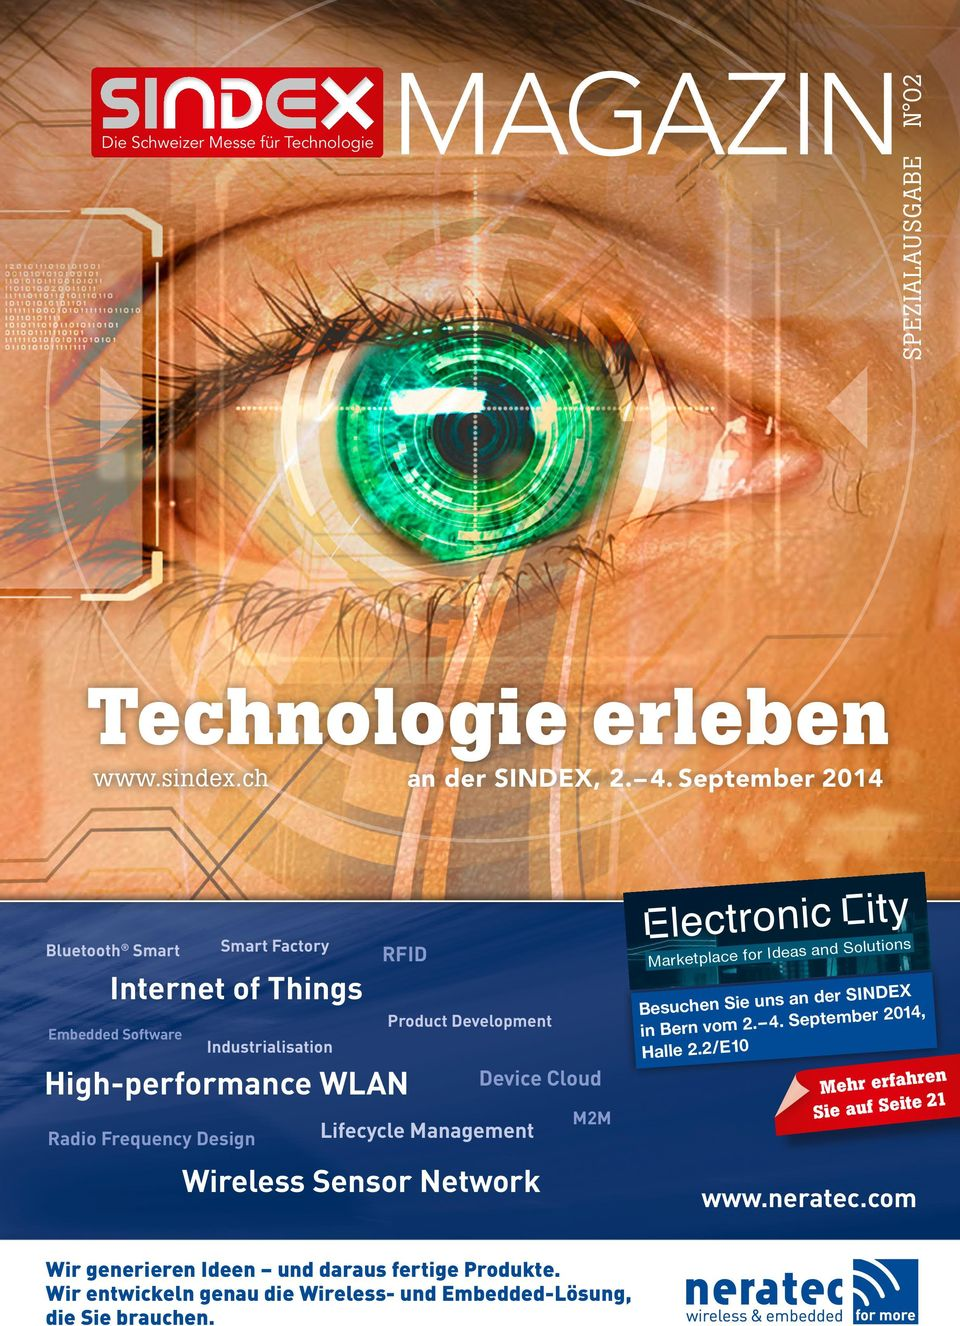 Cloud M2M Radio Frequency Design Lifecycle Management Wireless Sensor Network Marketplace for Ideas and Solutions Besuchen Sie uns an der SINDEX in Bern vom